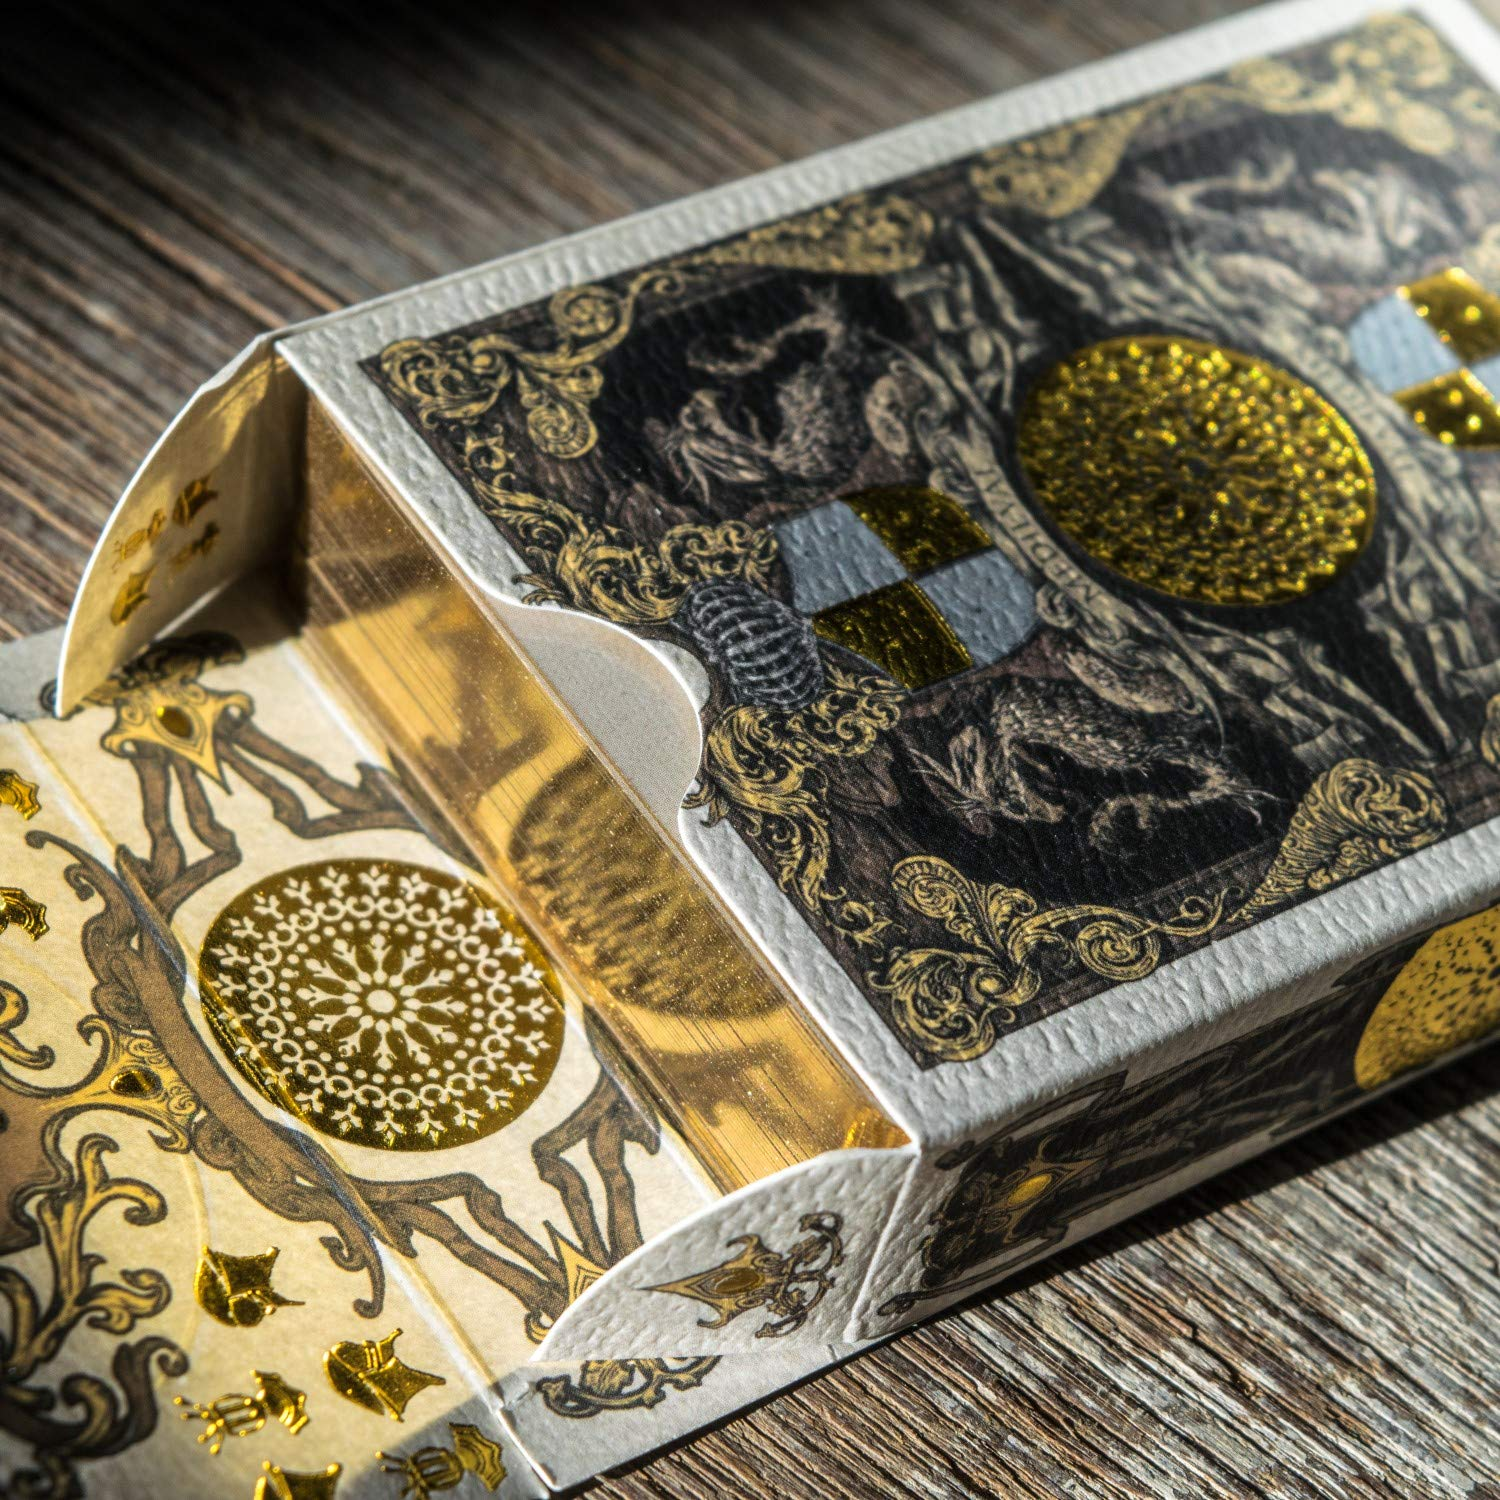 Medieval Royal Playing Cards, Gold Deck of Cards, Cool Magic Cards, Best Poker Cards, Unique Illustrated Foil Colors for Kids & Adults, Playing Card Decks Games, Standard Size by Elephant Playing Cards (Image #1)